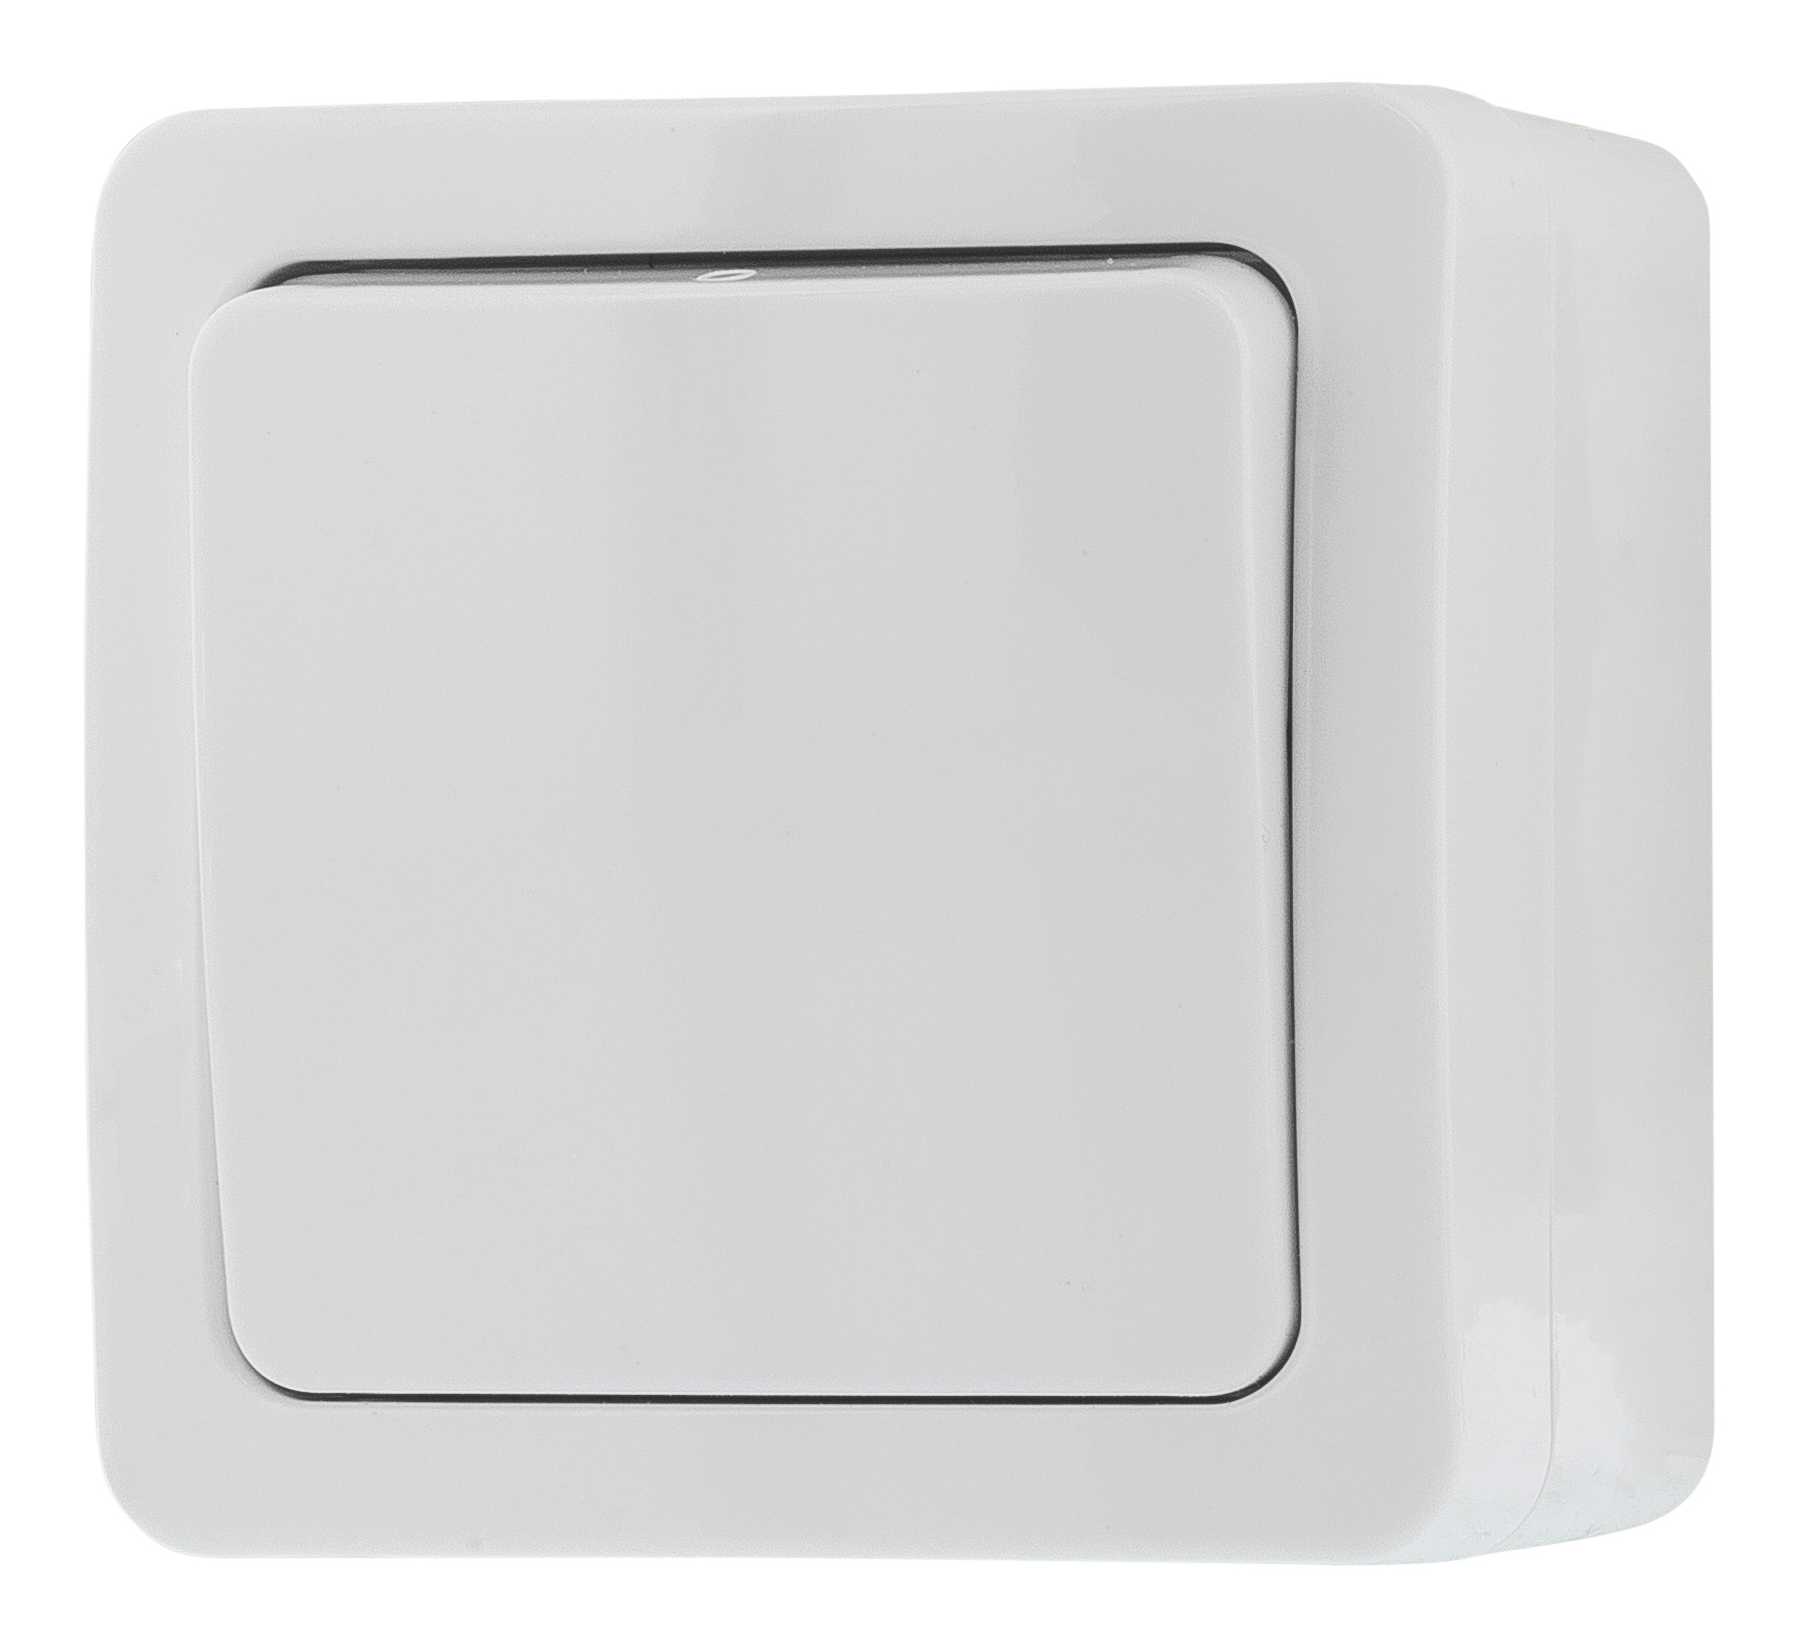 Epzi switch with a button, for surface mounting, IP54, 1 pole, white H2-A110M (Kan sendes i brev)